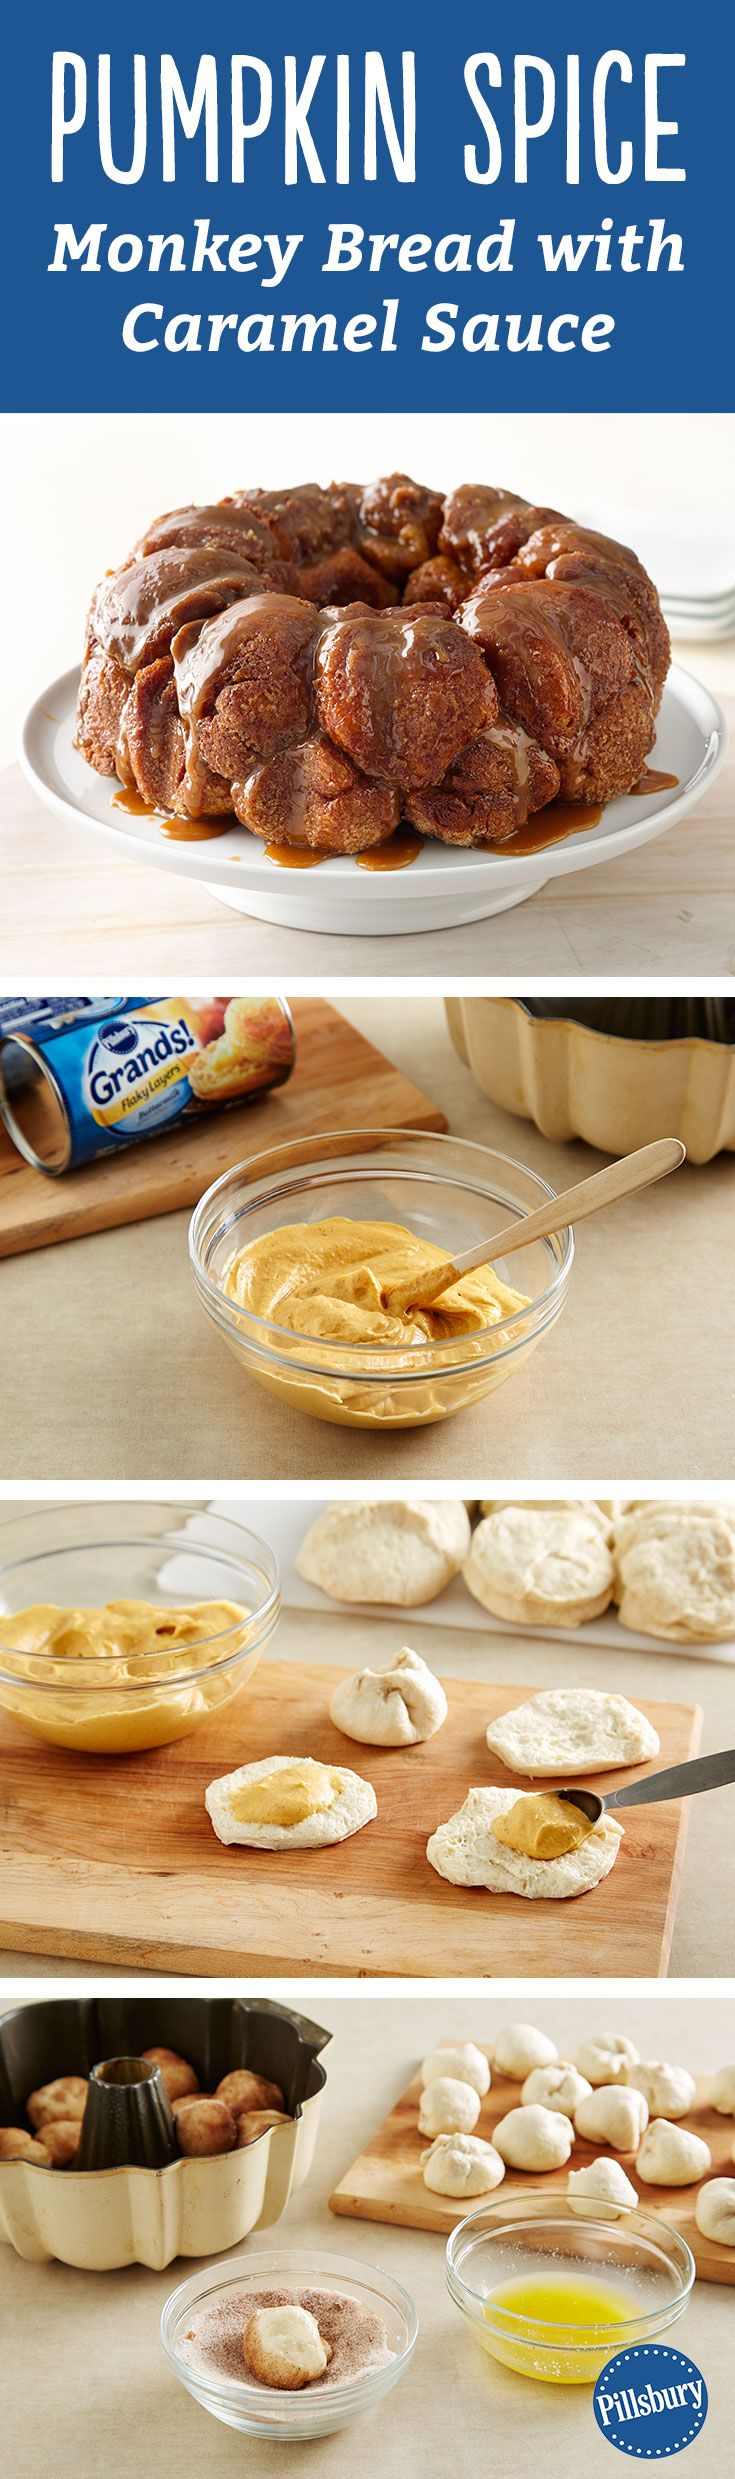 ... filled with creamy pumpkin, cream cheese, and decadent caramel sauce